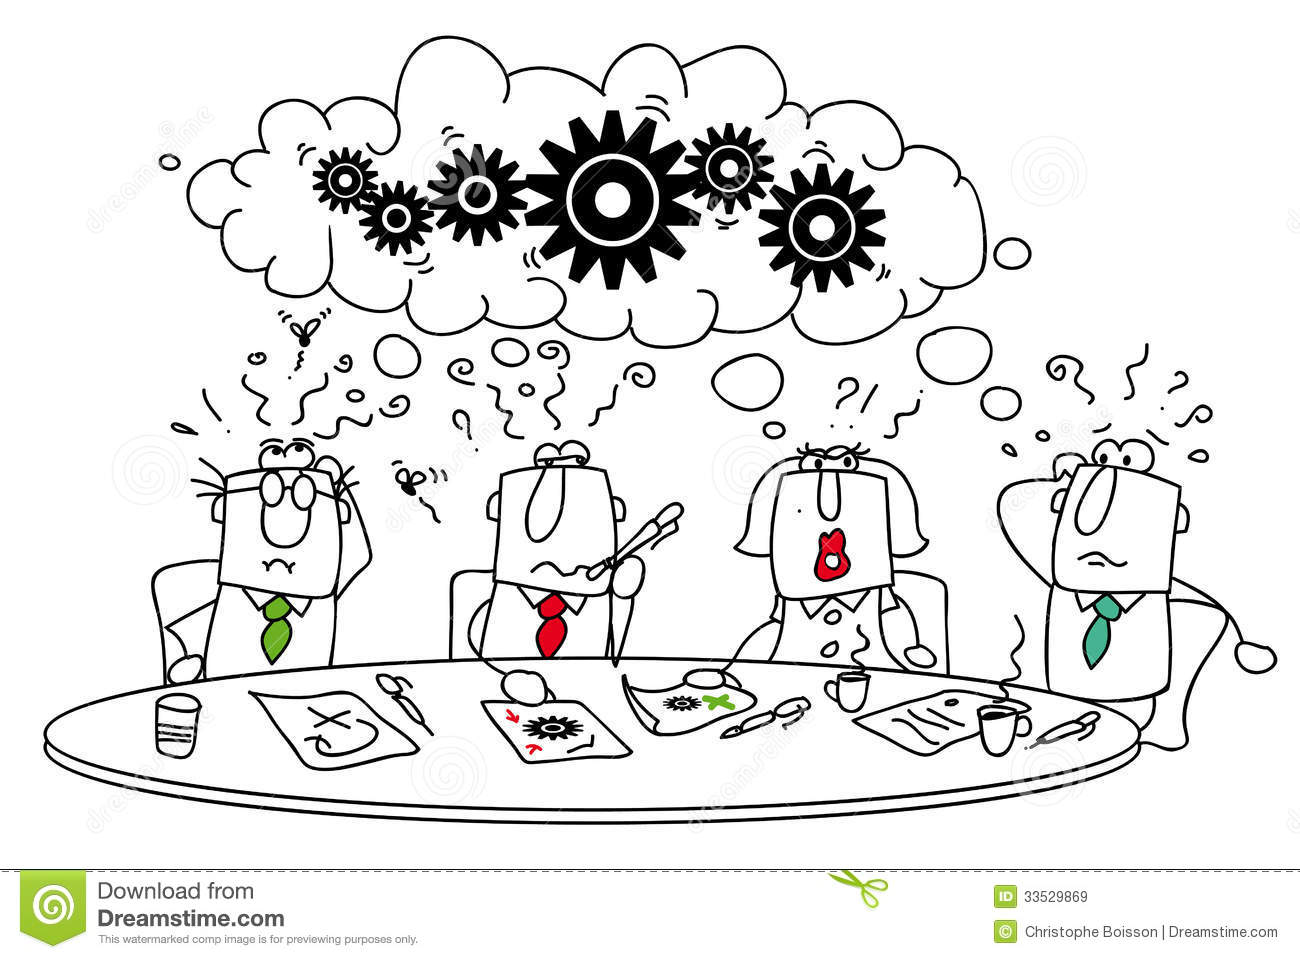 Brainstorming Stock Vector Illustration Of Concepts